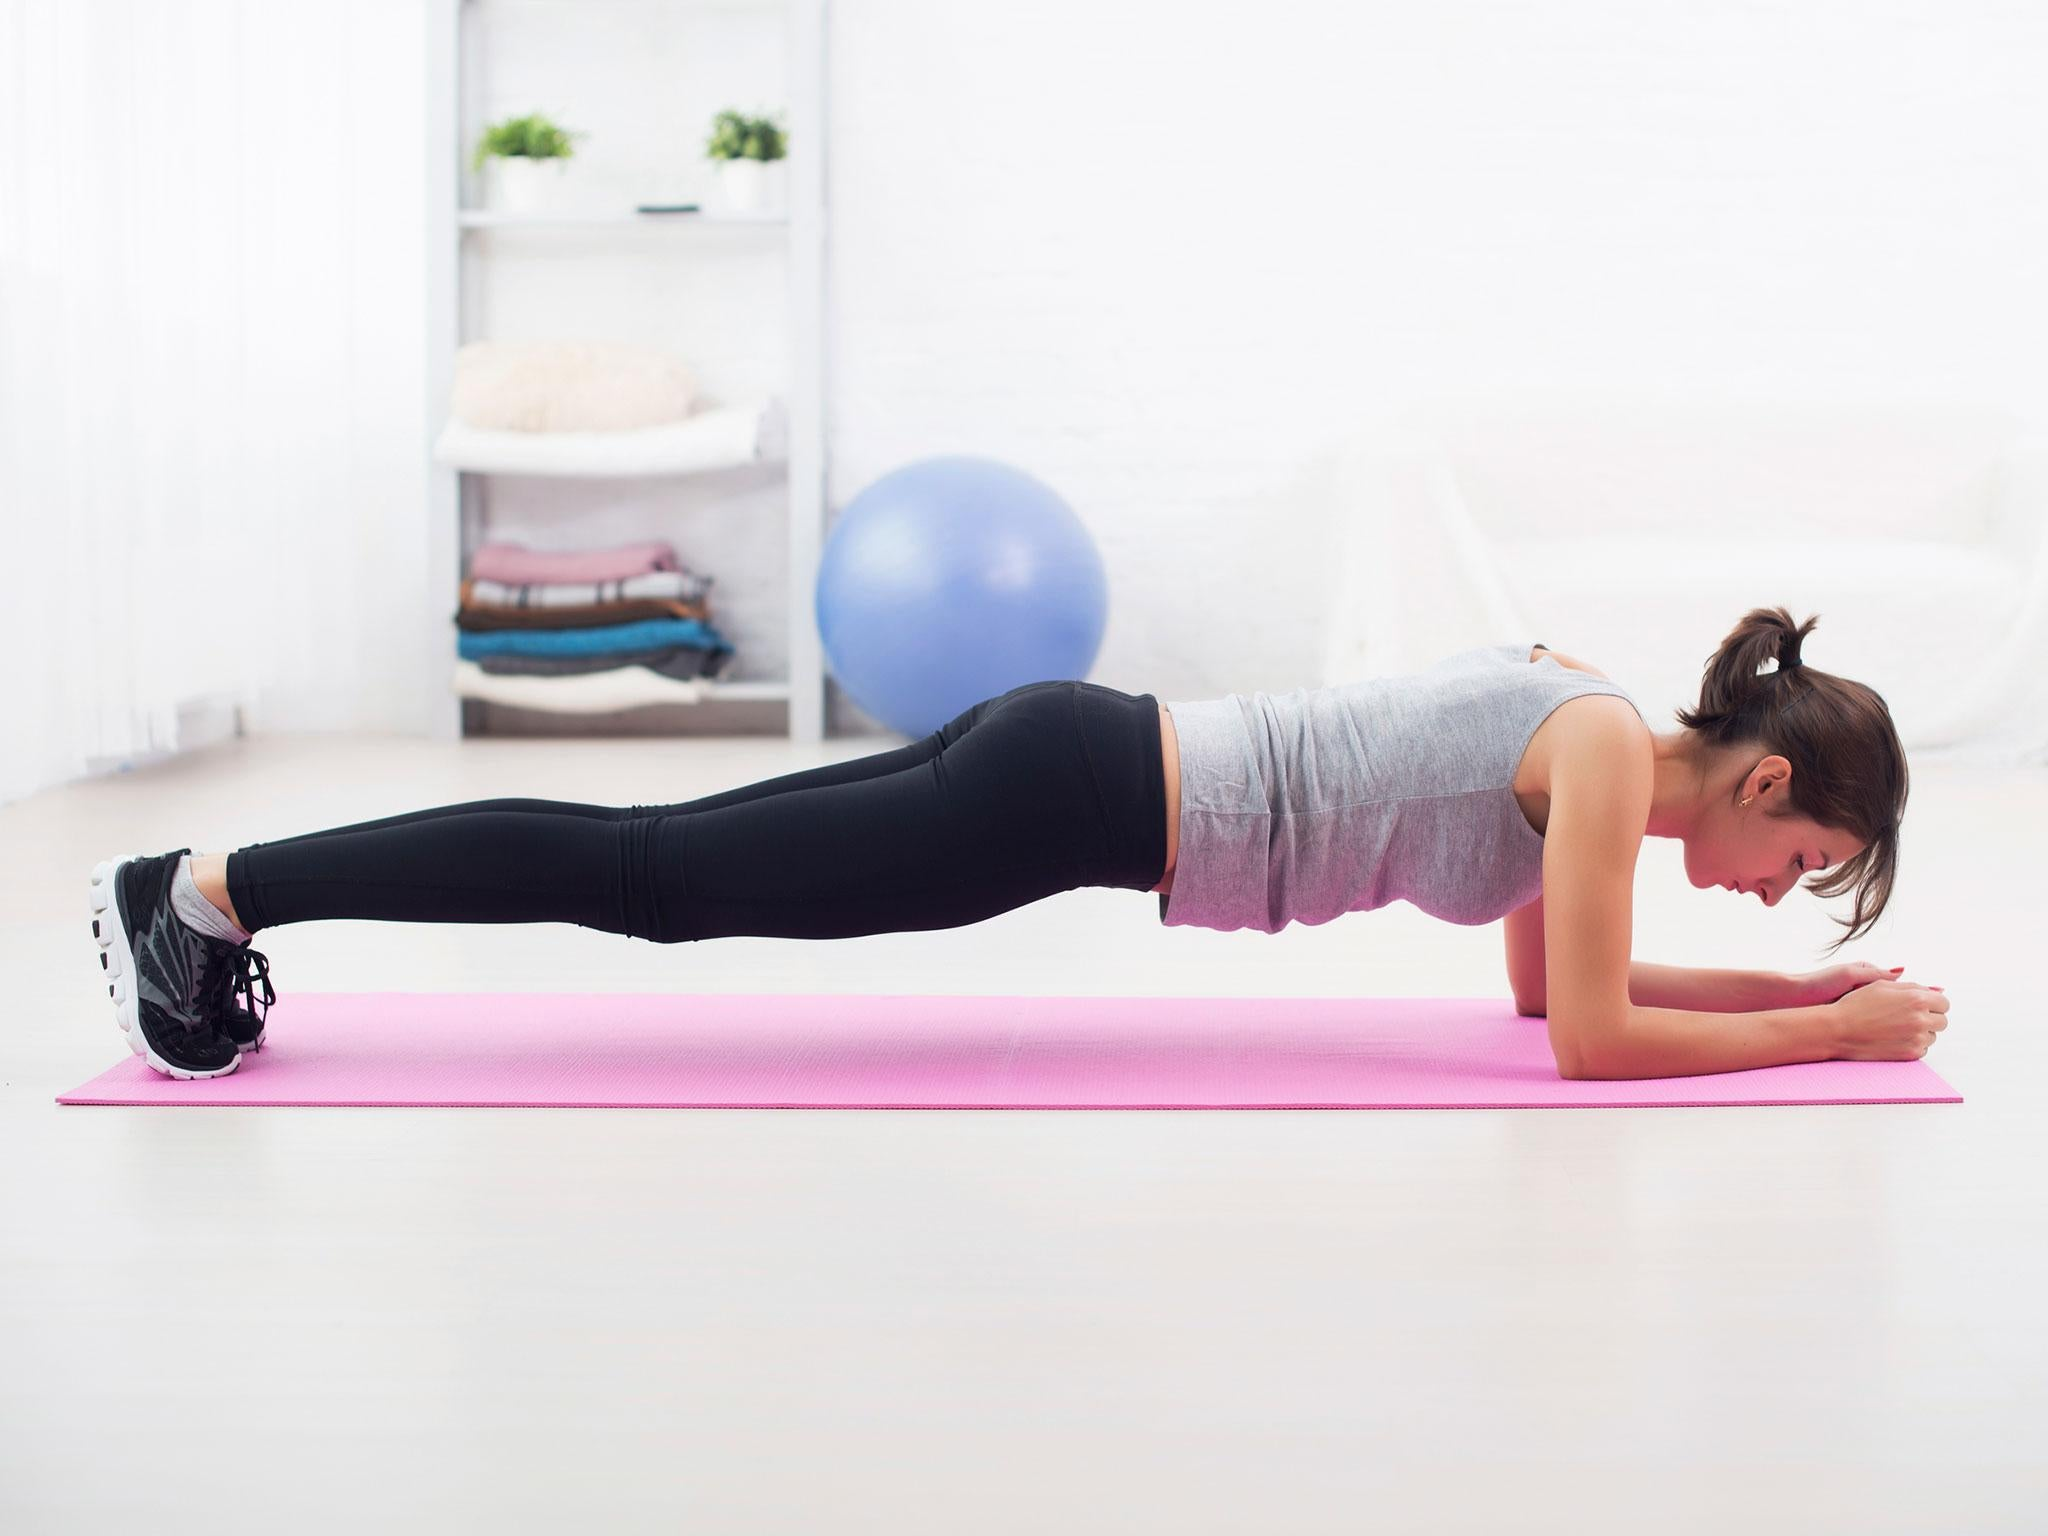 How to plank and increase your core strength without injuring yourself